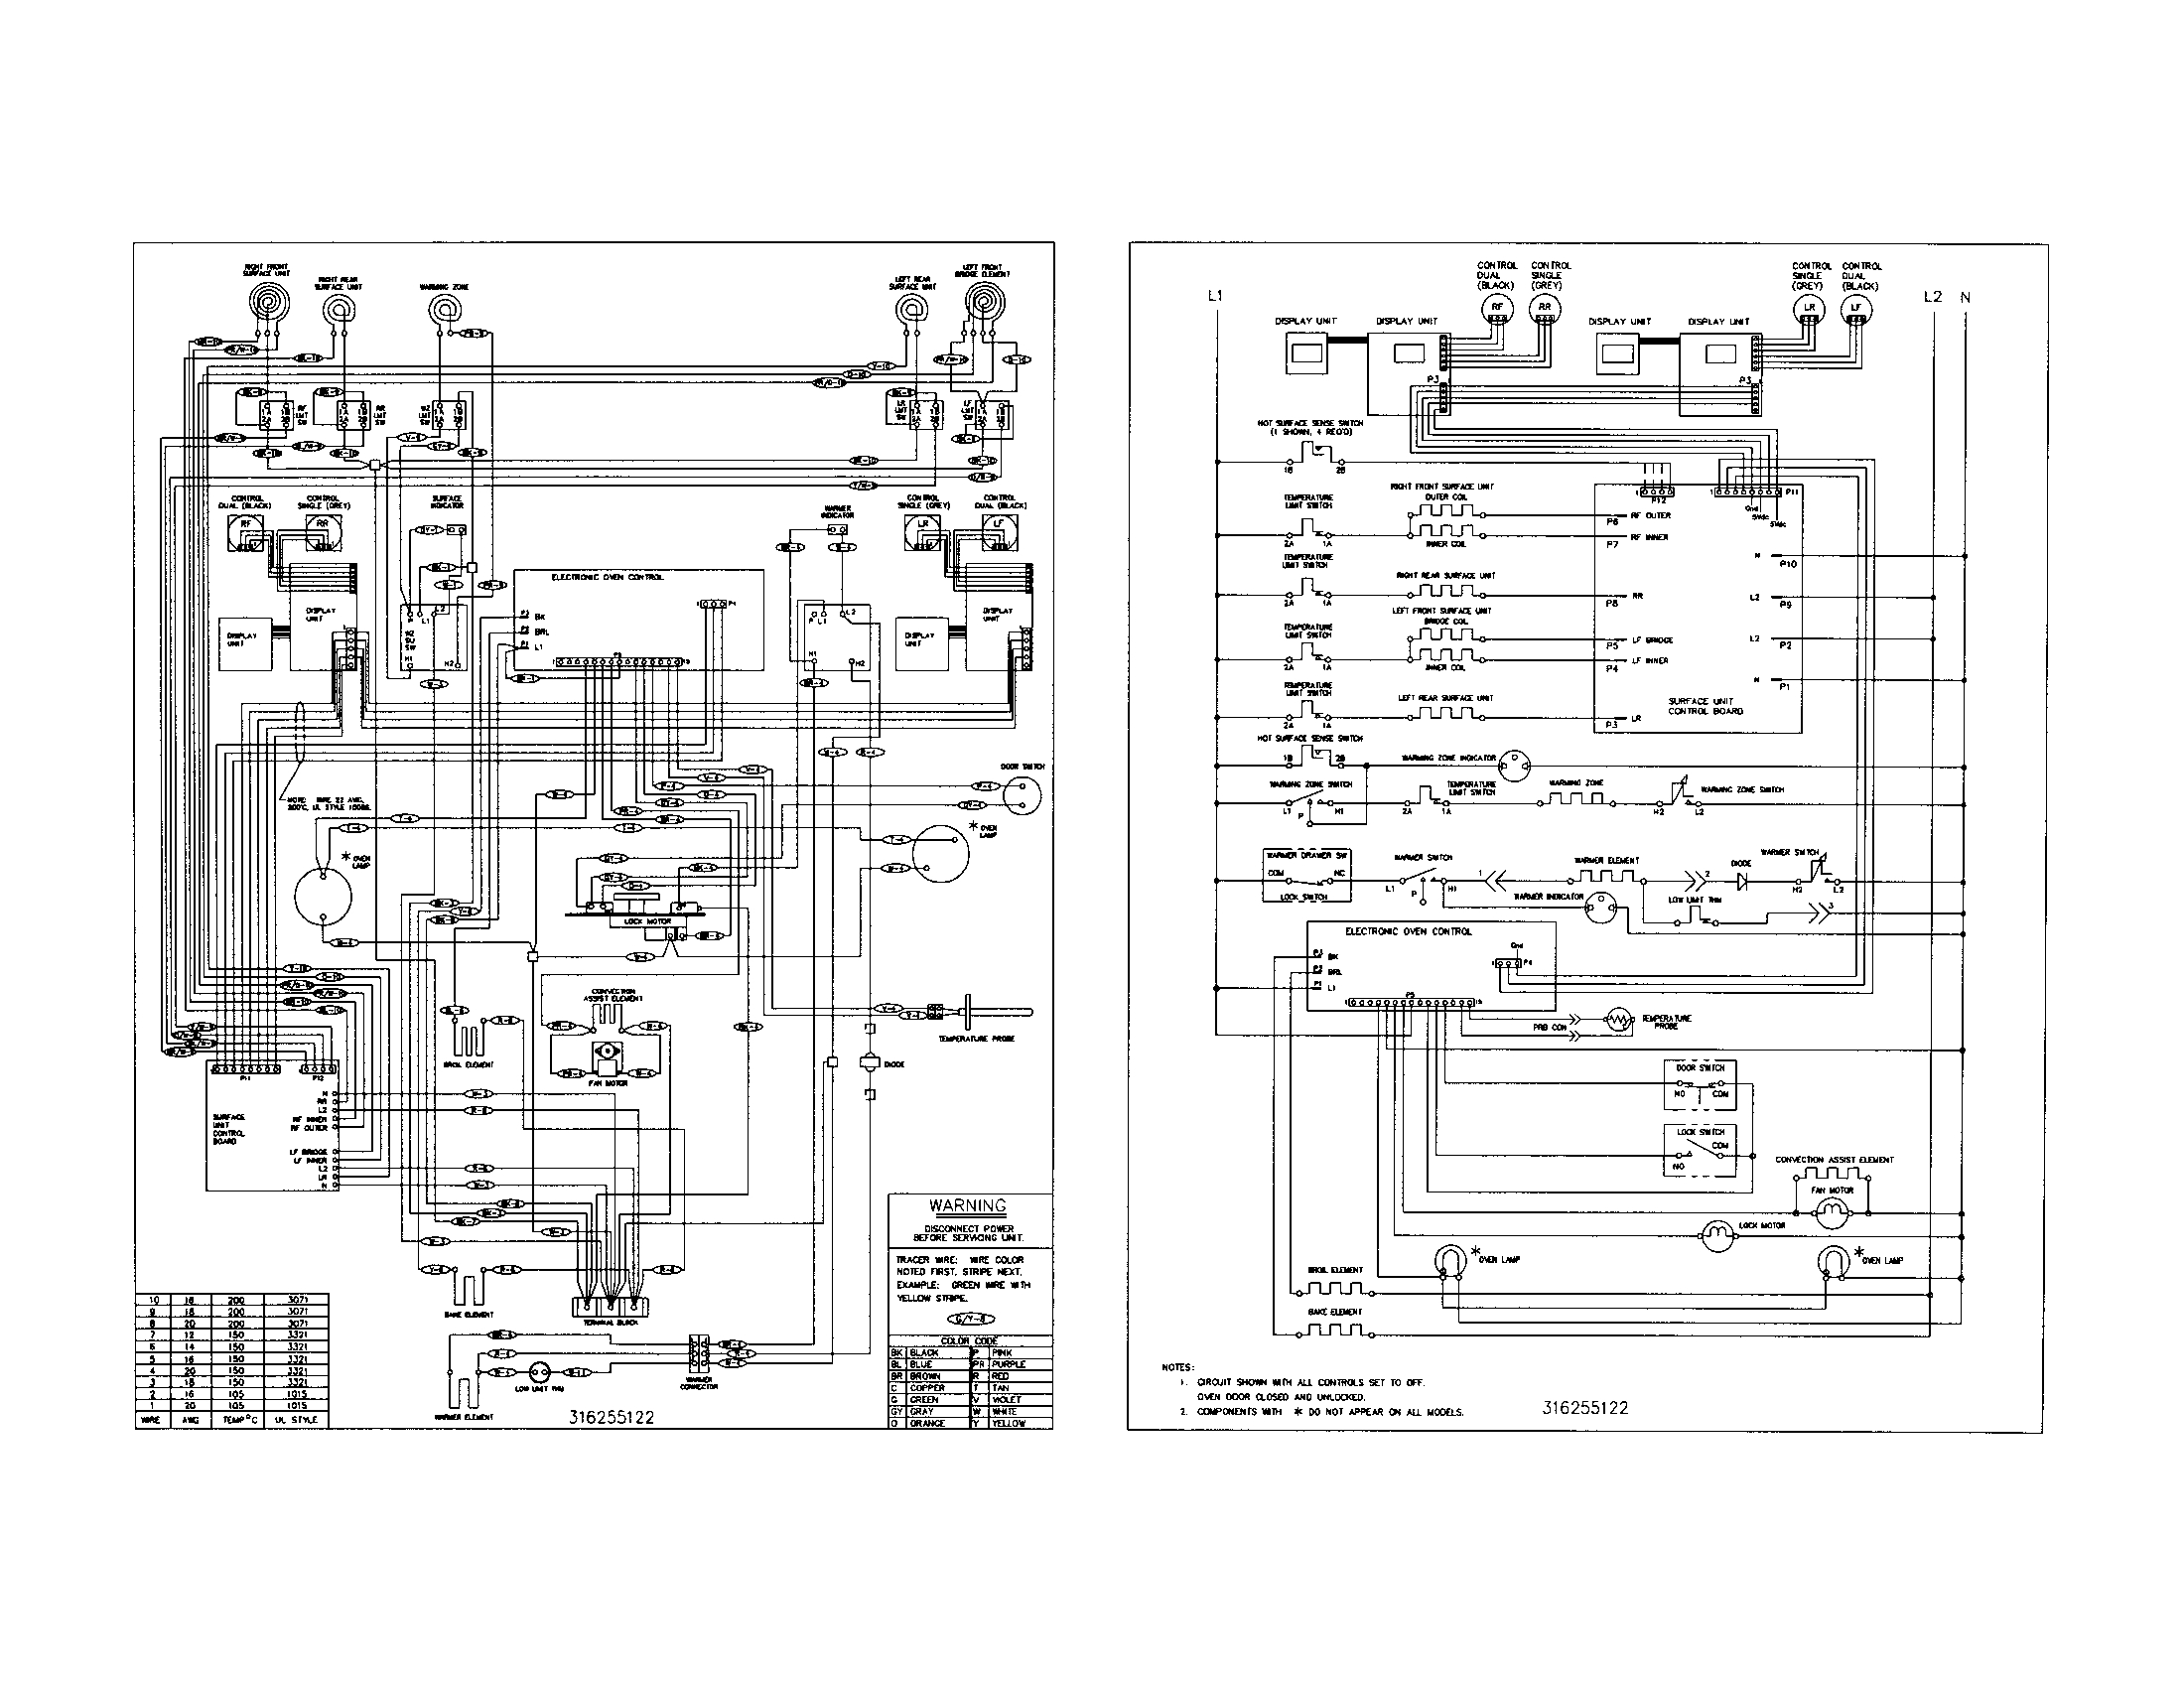 Wiring Diagram Of T12 Towmaster Trailer Auto Electrical Plug Wires 99 Sunfire Schematic Related With